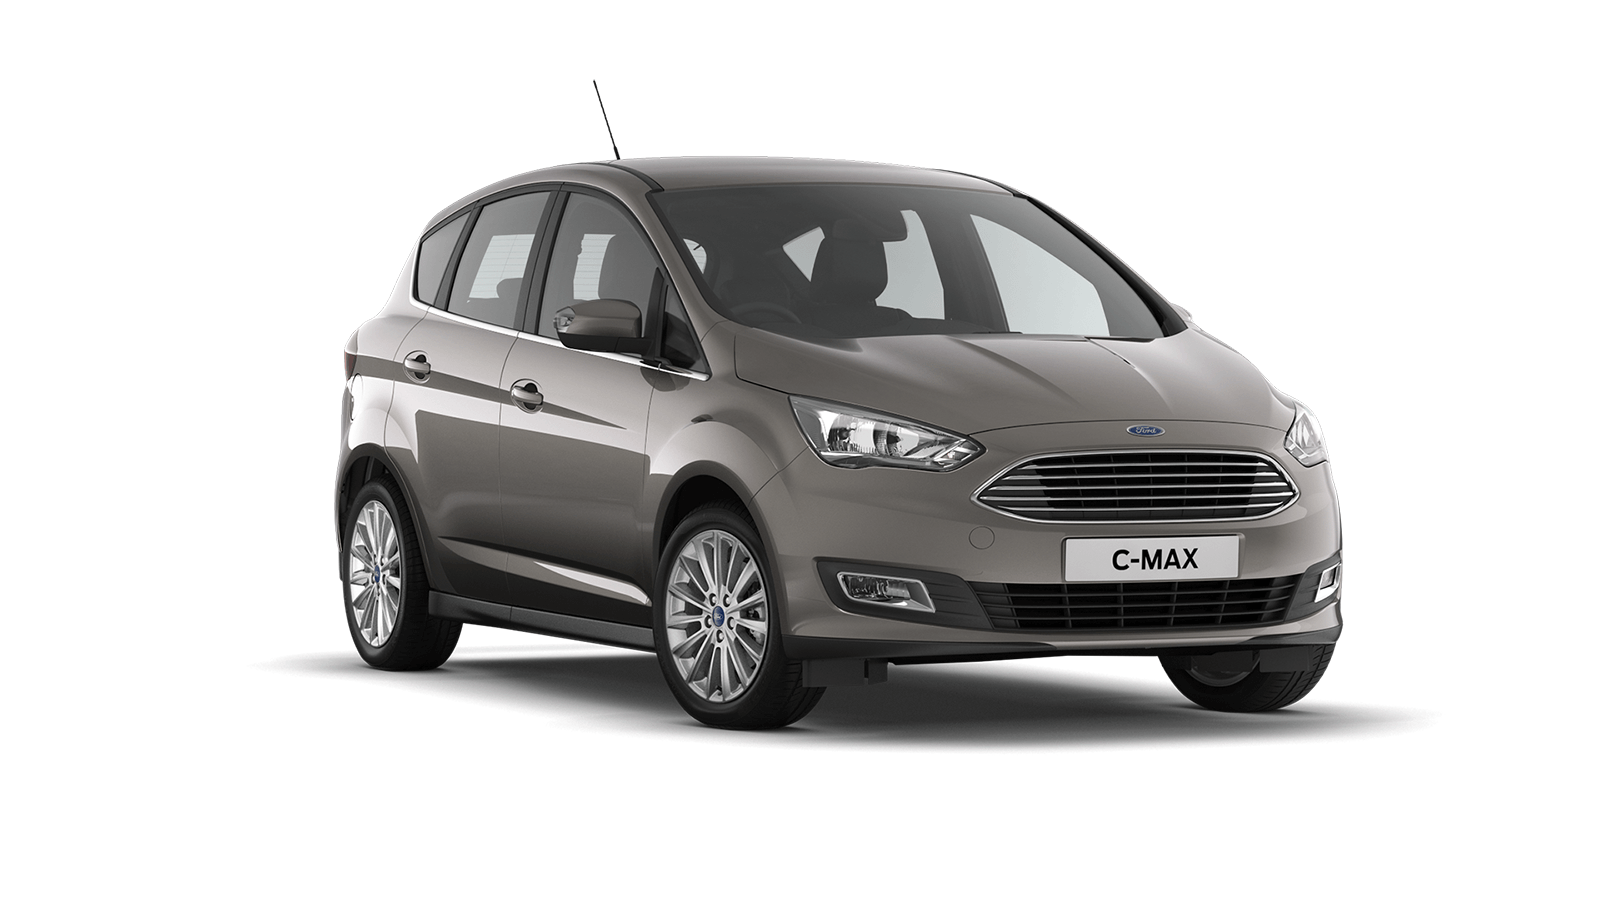 Ford C-MAX at Hawkins Motors